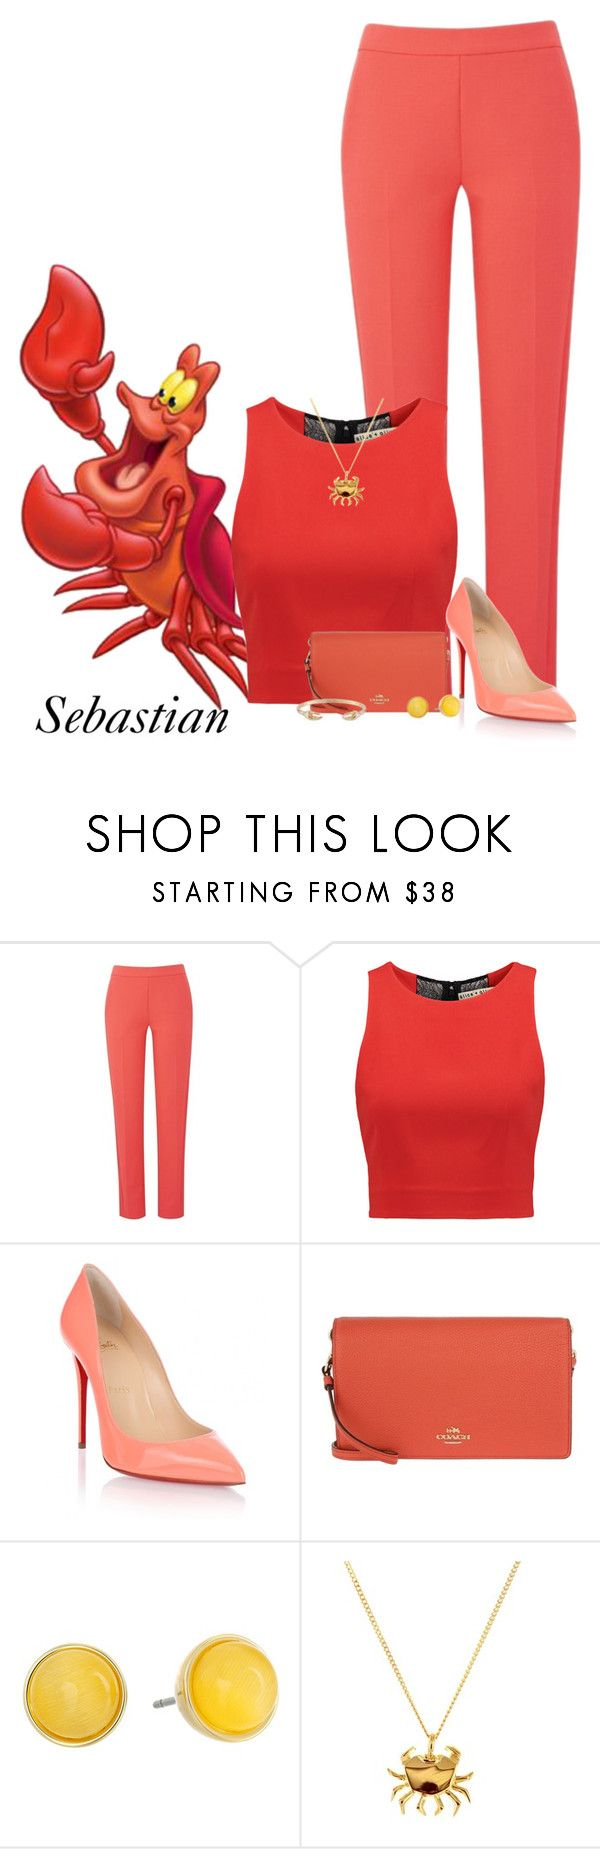 """""""The Little Mermaid: Sebastian"""" by casualchica on Polyvore featuring Amanda Wakeley, Alice + Olivia, Christian Louboutin, Coach, Kate Spade, Origami Jewellery, Les Néréides, disney, disneycharacter and casualchica"""